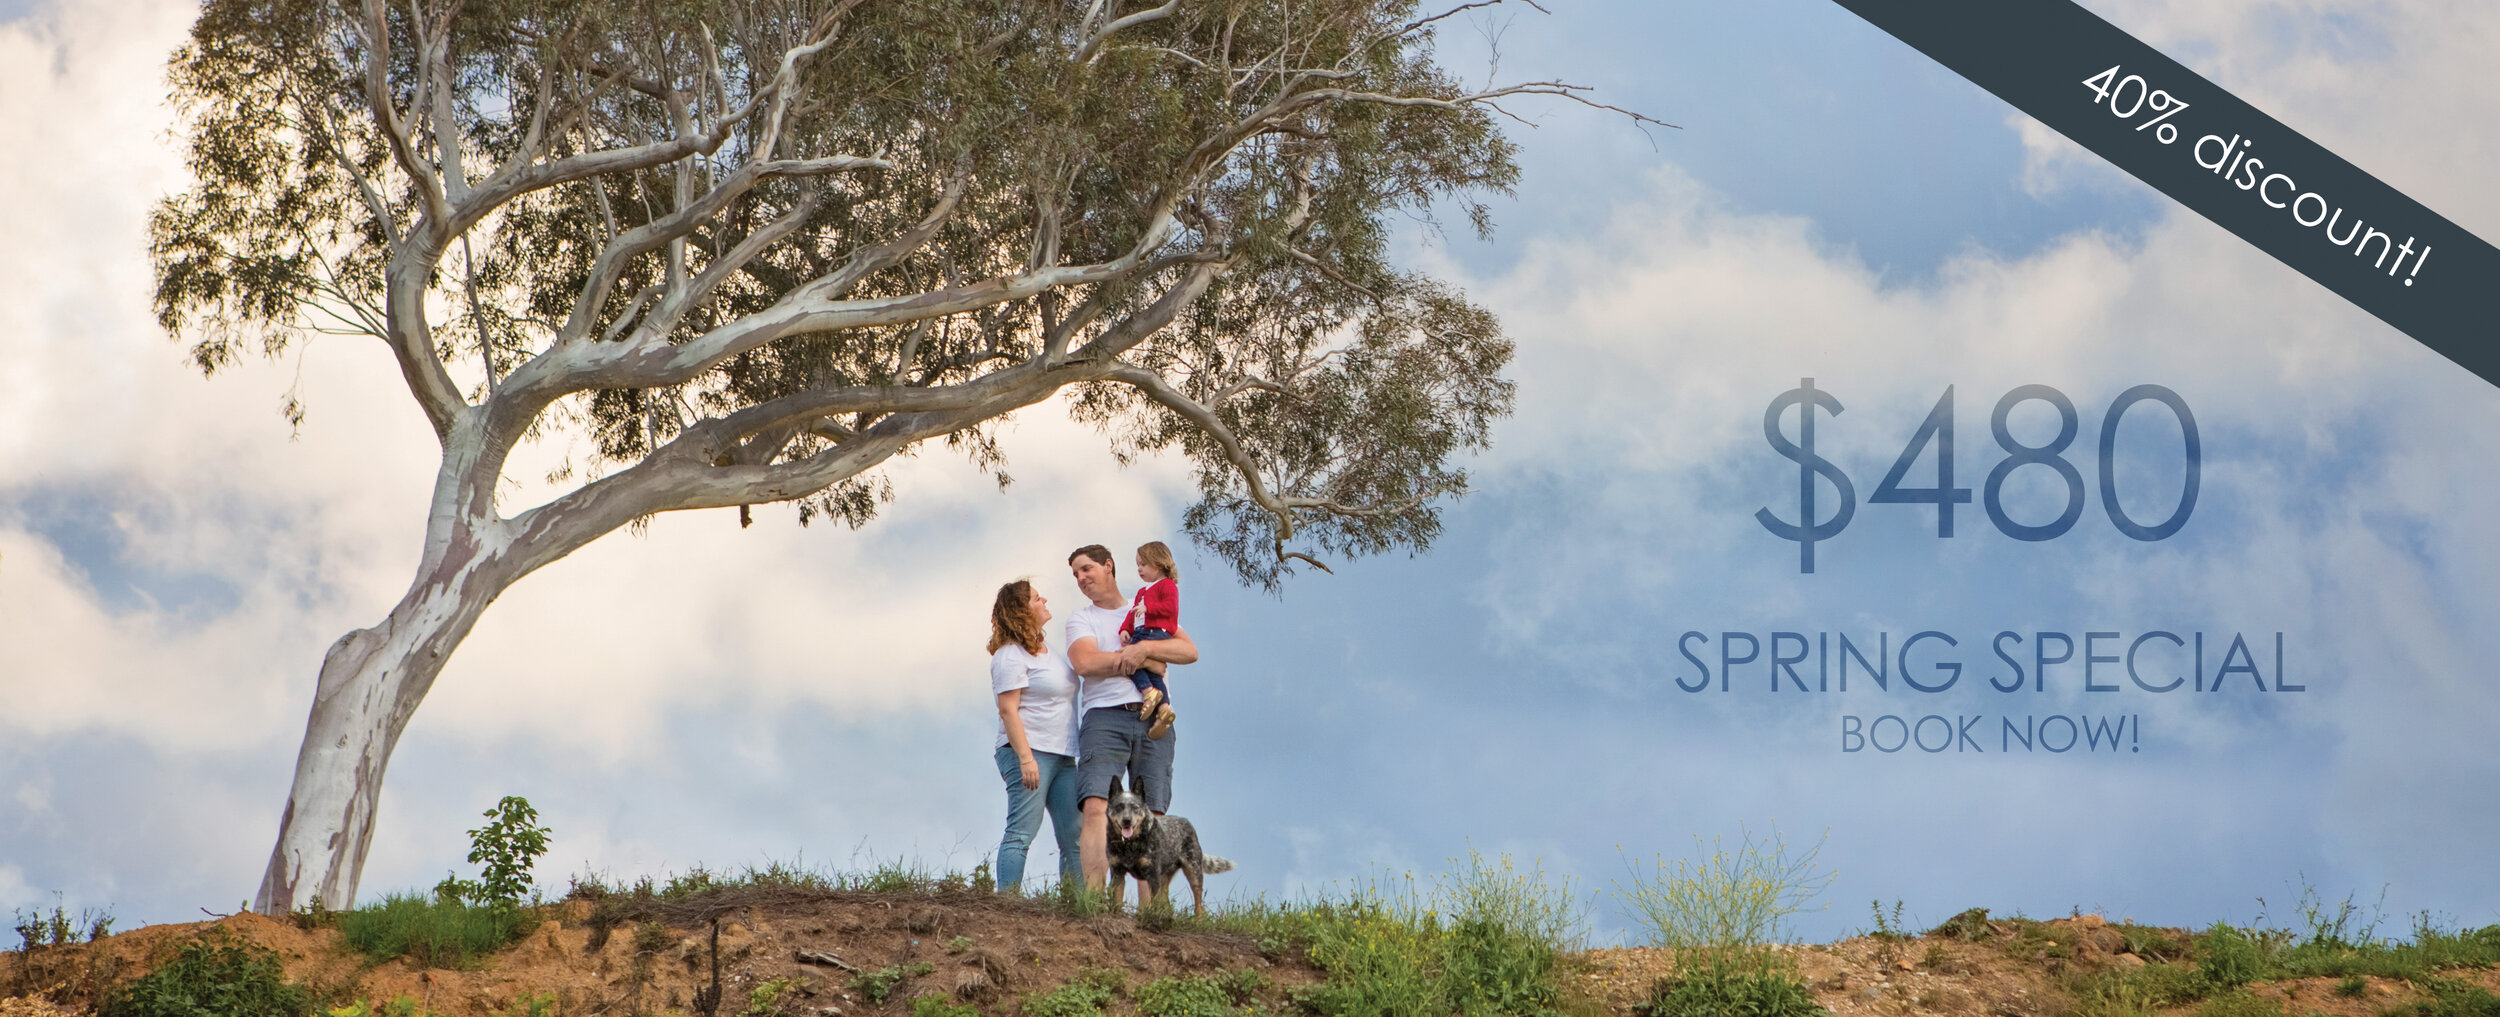 """Spring Special  includes pre-consult, 1 hour session, viewing session and your choice of 10 digital images, and either 3 small 5x7"""" prints or 1 small framed print, valued at $800. Conditions apply. For a limited time only."""